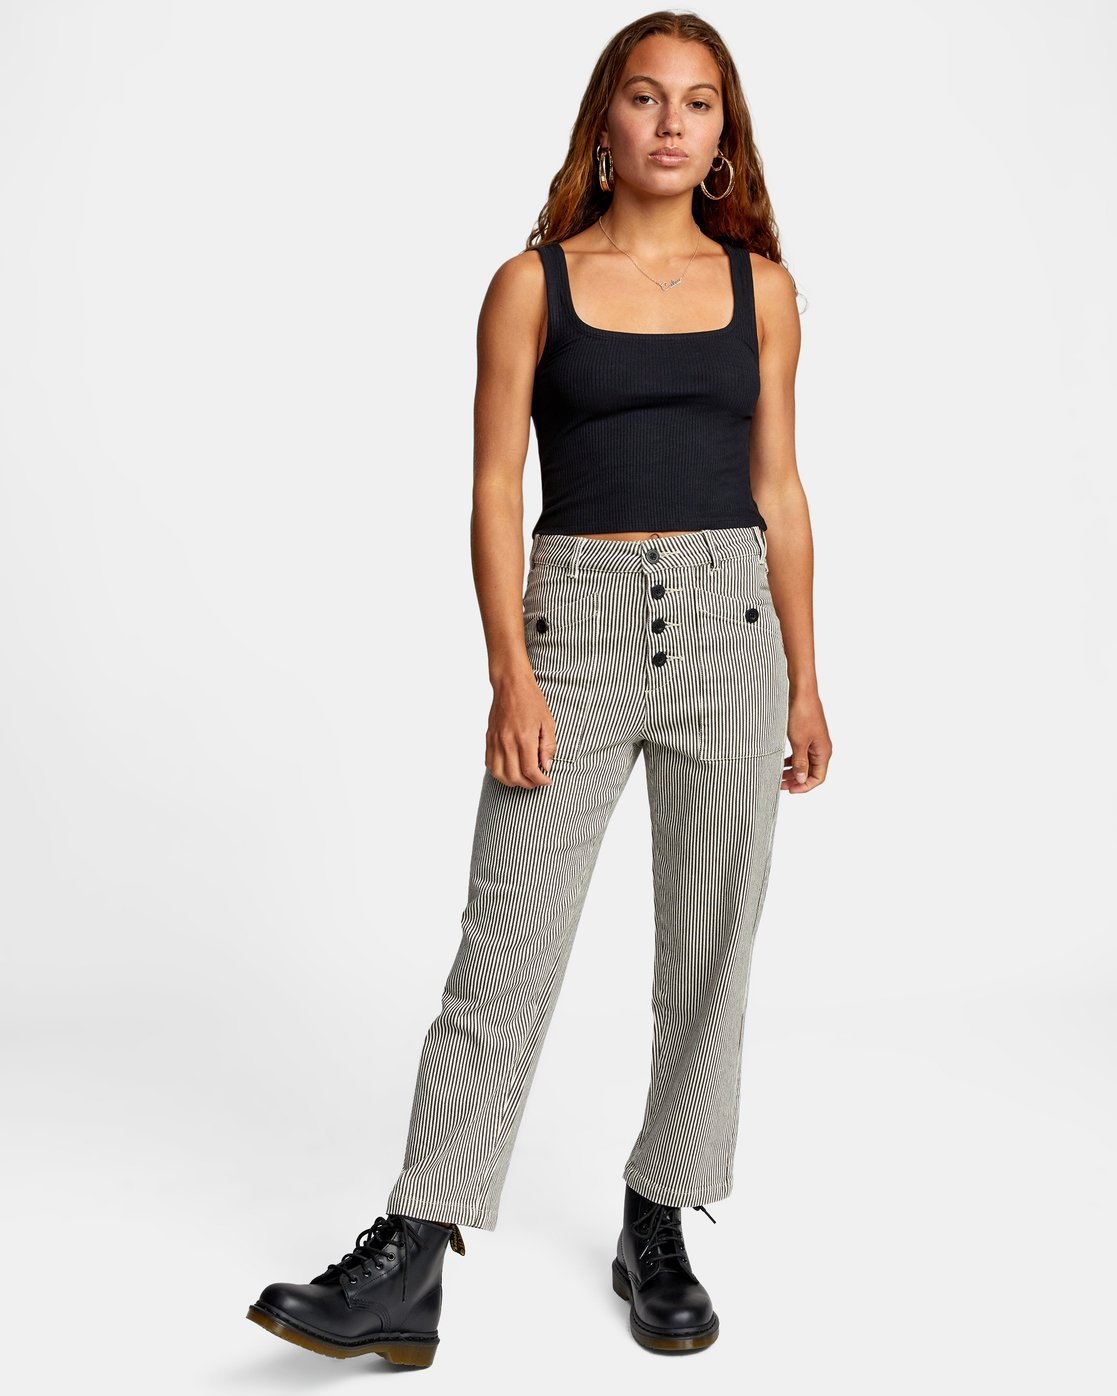 2 BADDER RELAXED FIT PANT  AVJNP00106 RVCA